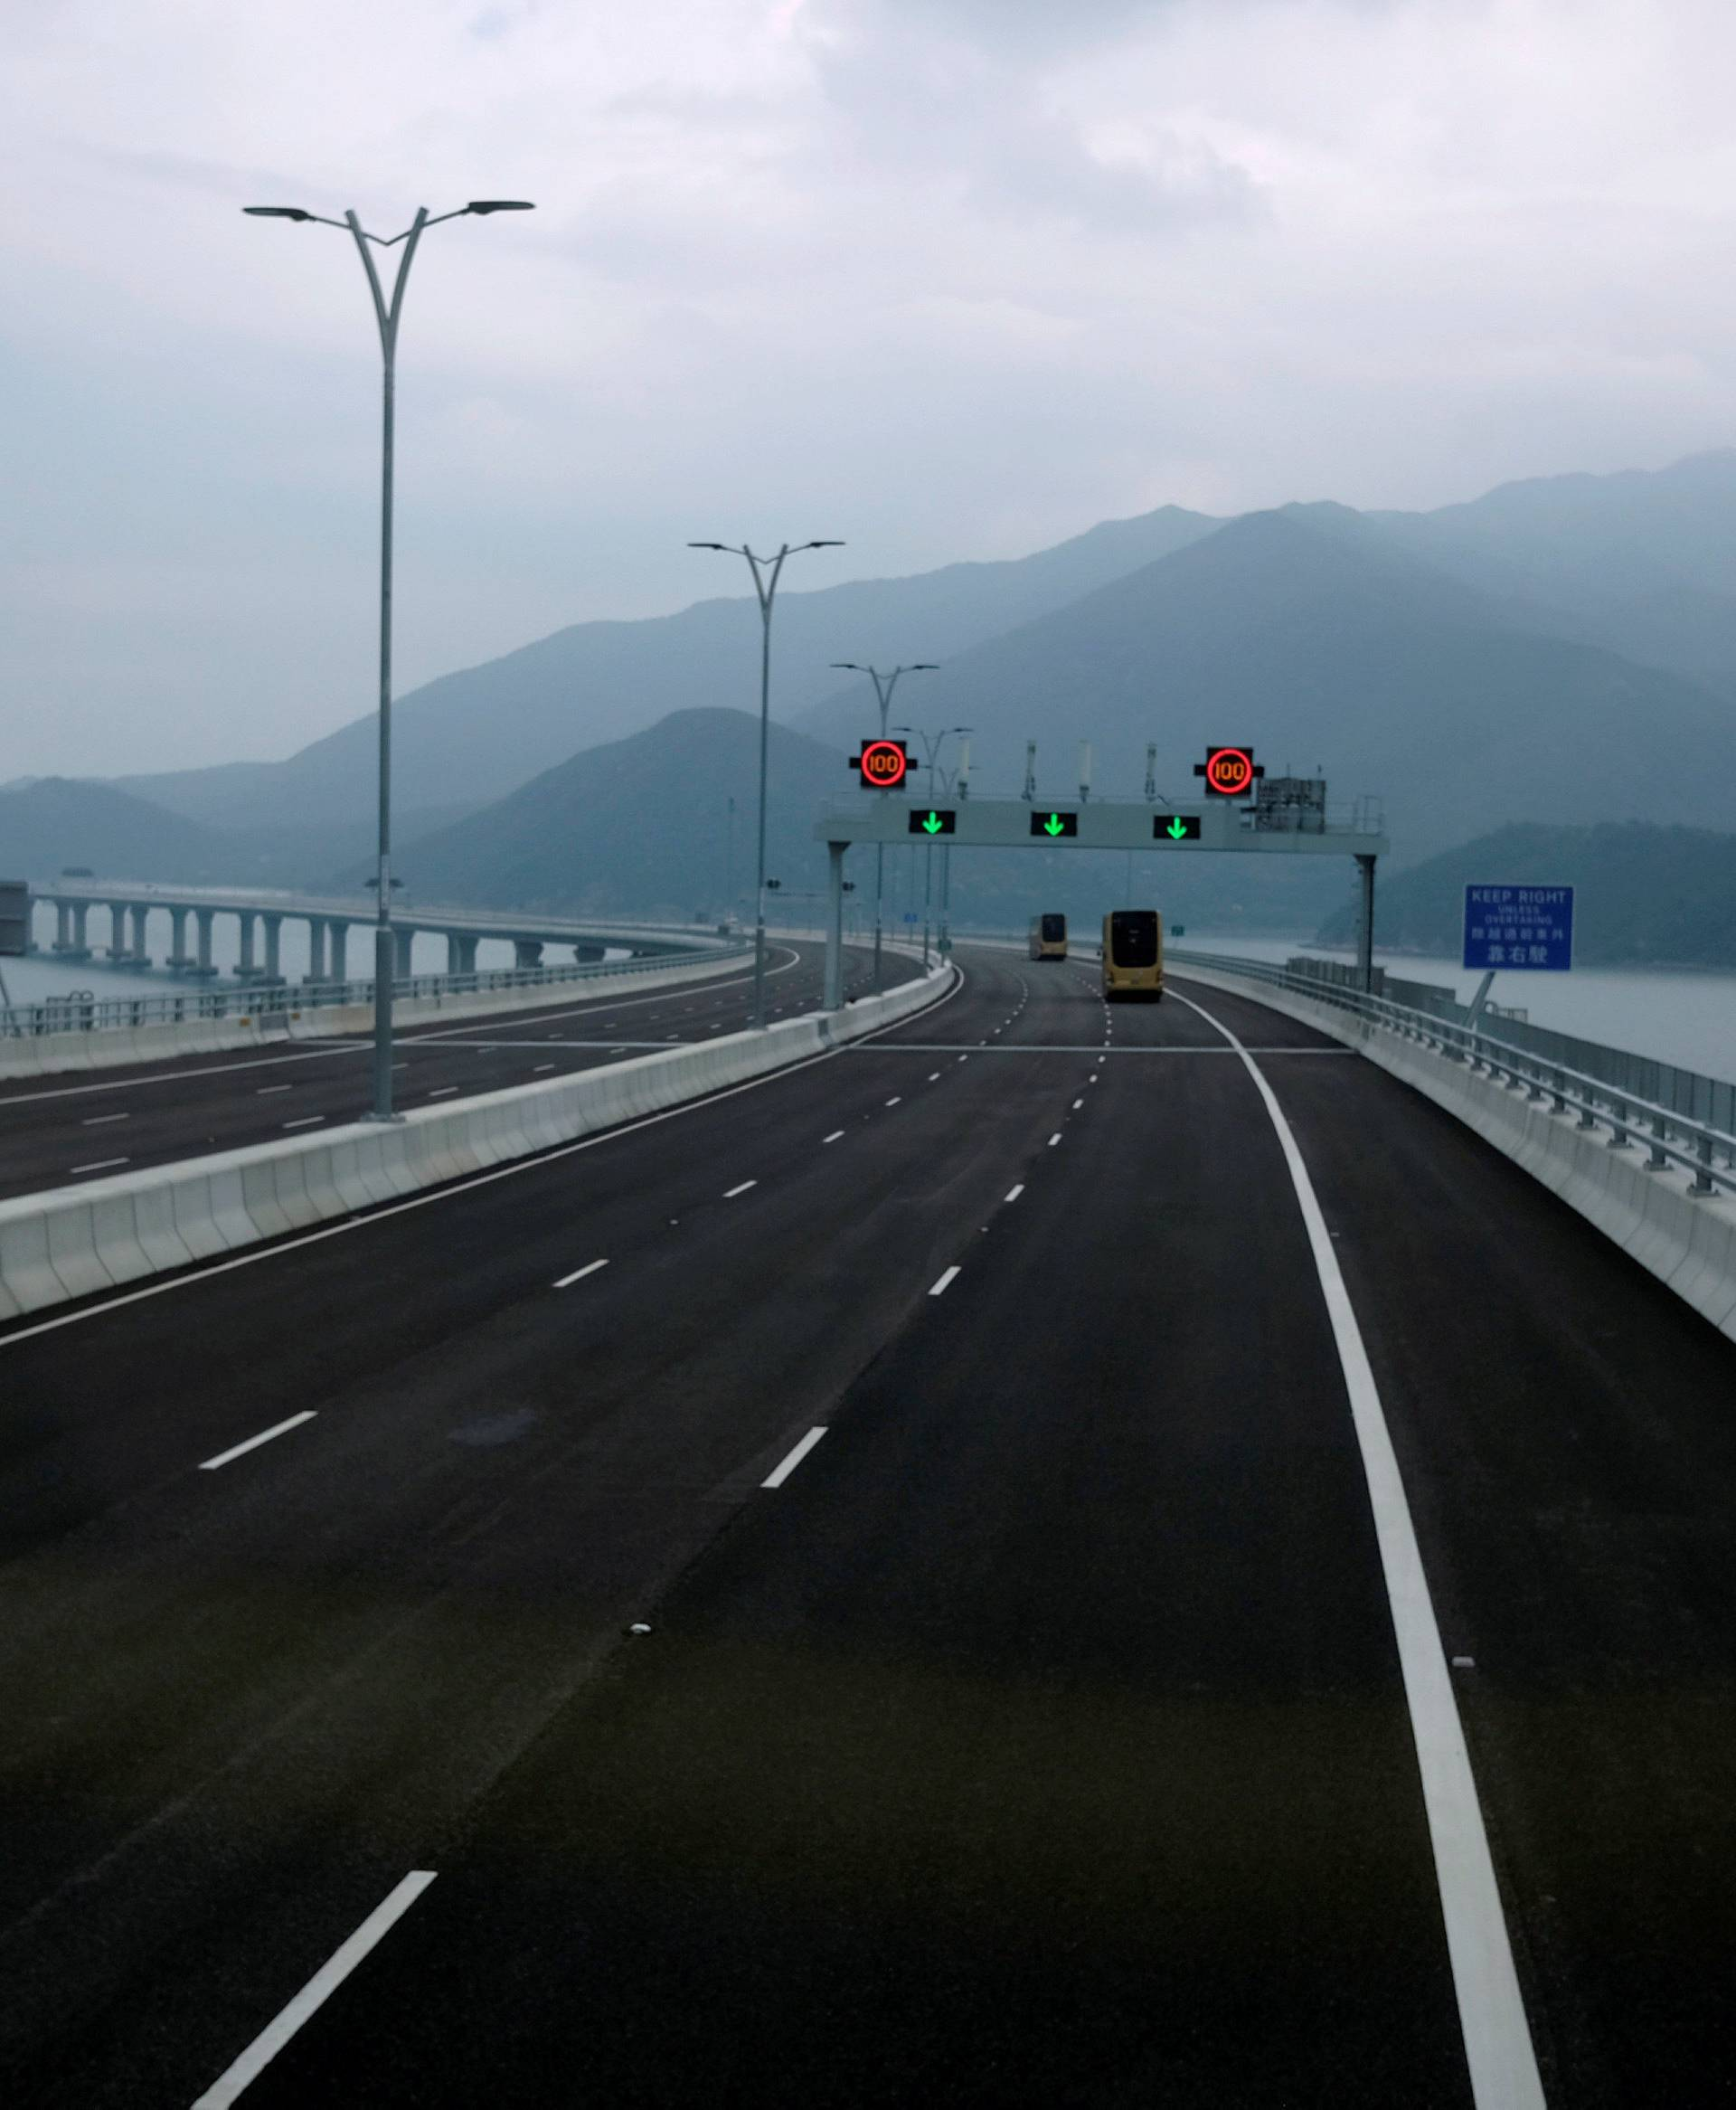 View on the Hong Kong side of the Hong Kong-Zhuhai-Macau bridge